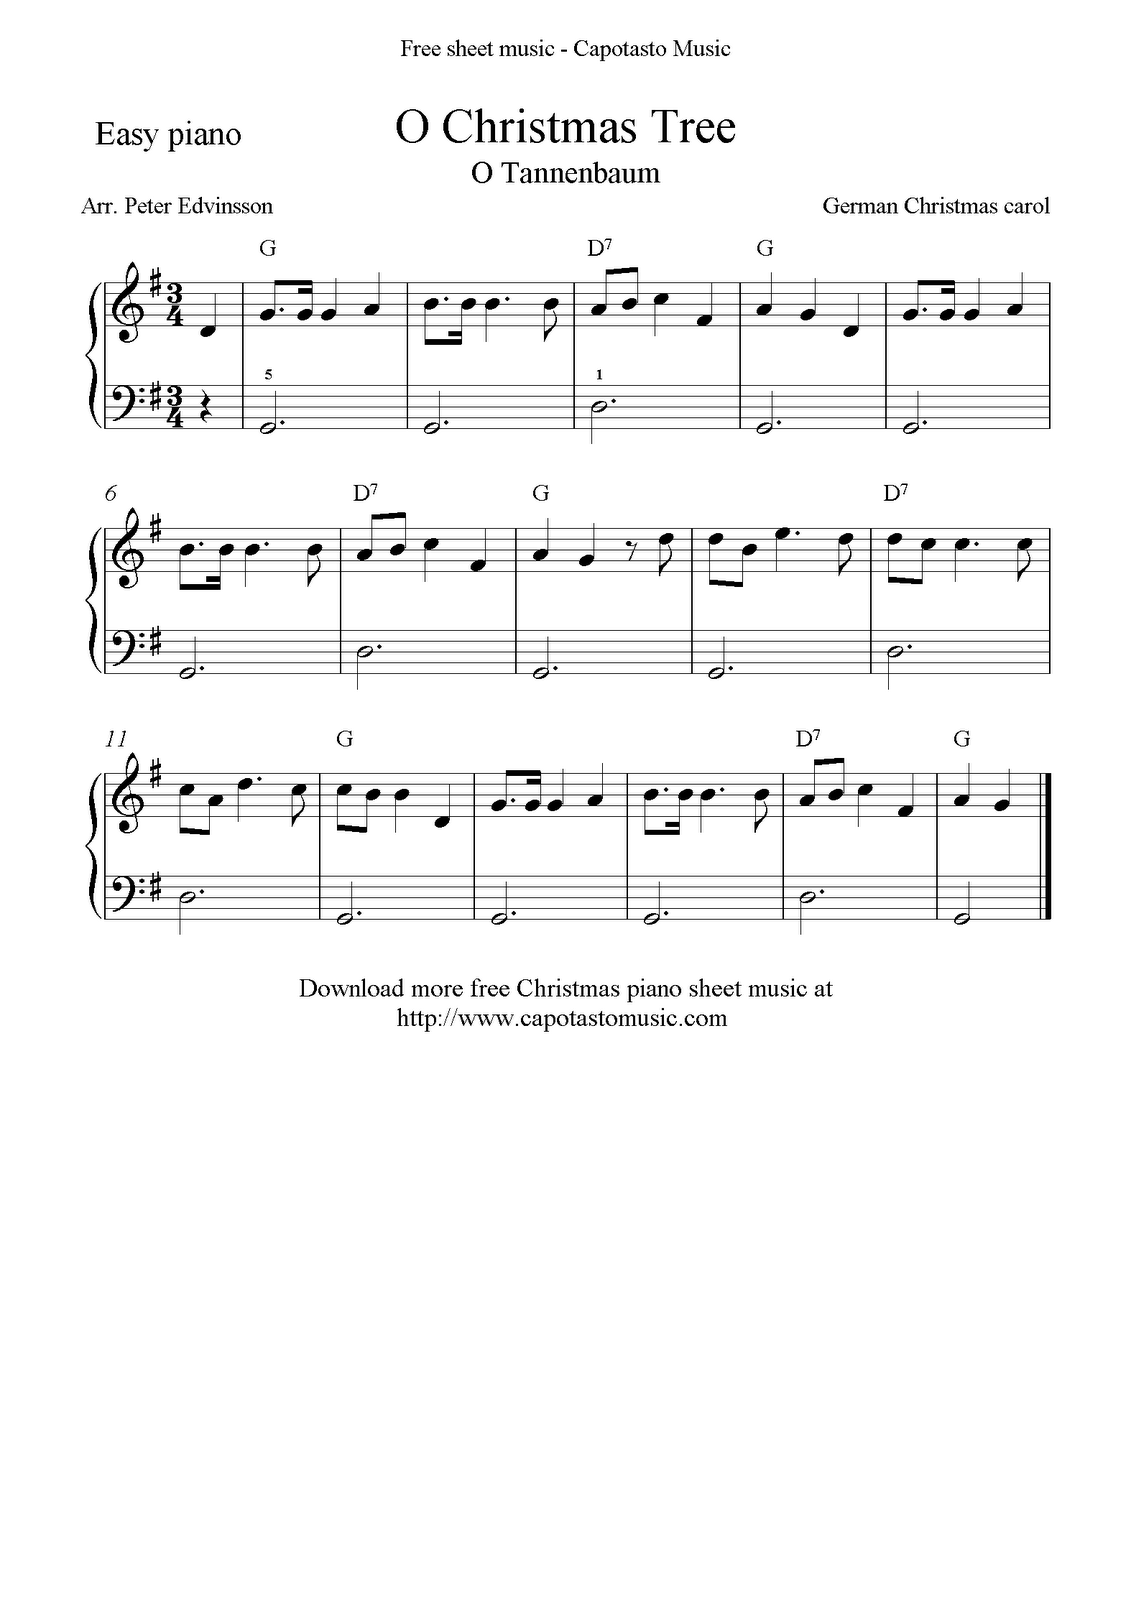 free christmas sheet music for easy piano solo o christmas tree - Free Christmas Piano Sheet Music